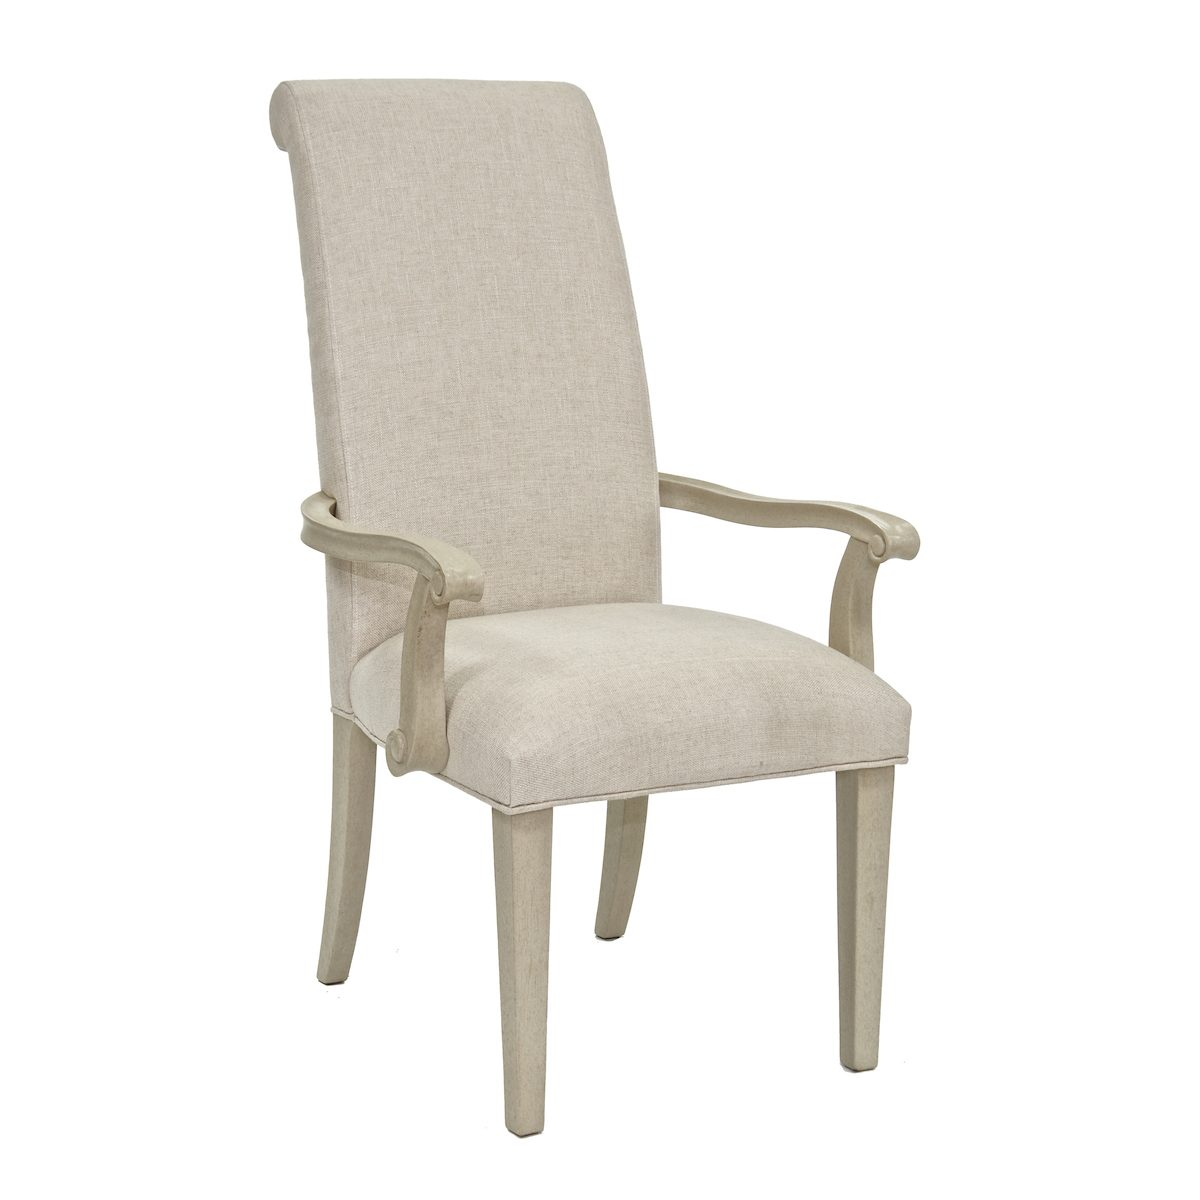 Vermont Upholstered Arm Chair, Upholstery